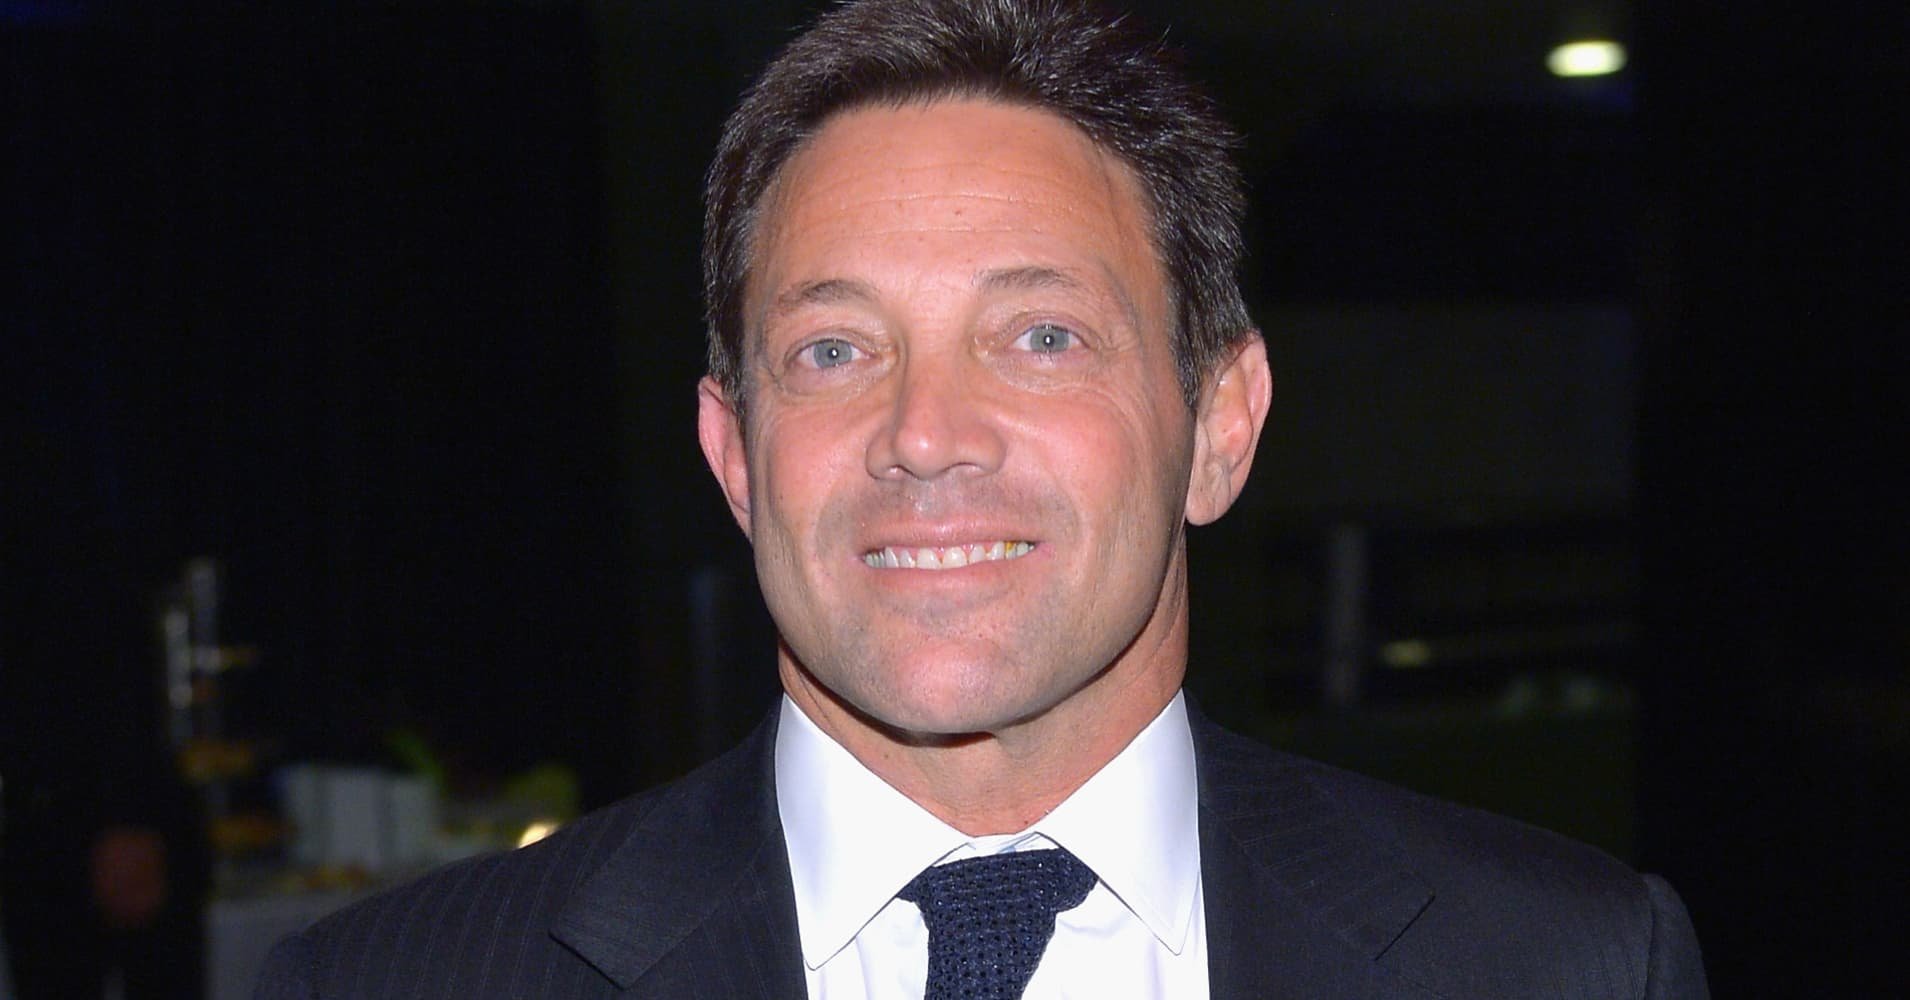 Writer Jordan Belfort attends the 'The Wolf Of Wall Street' premiere after party at Roseland Ballroom on December 17, 2013 in New York City.